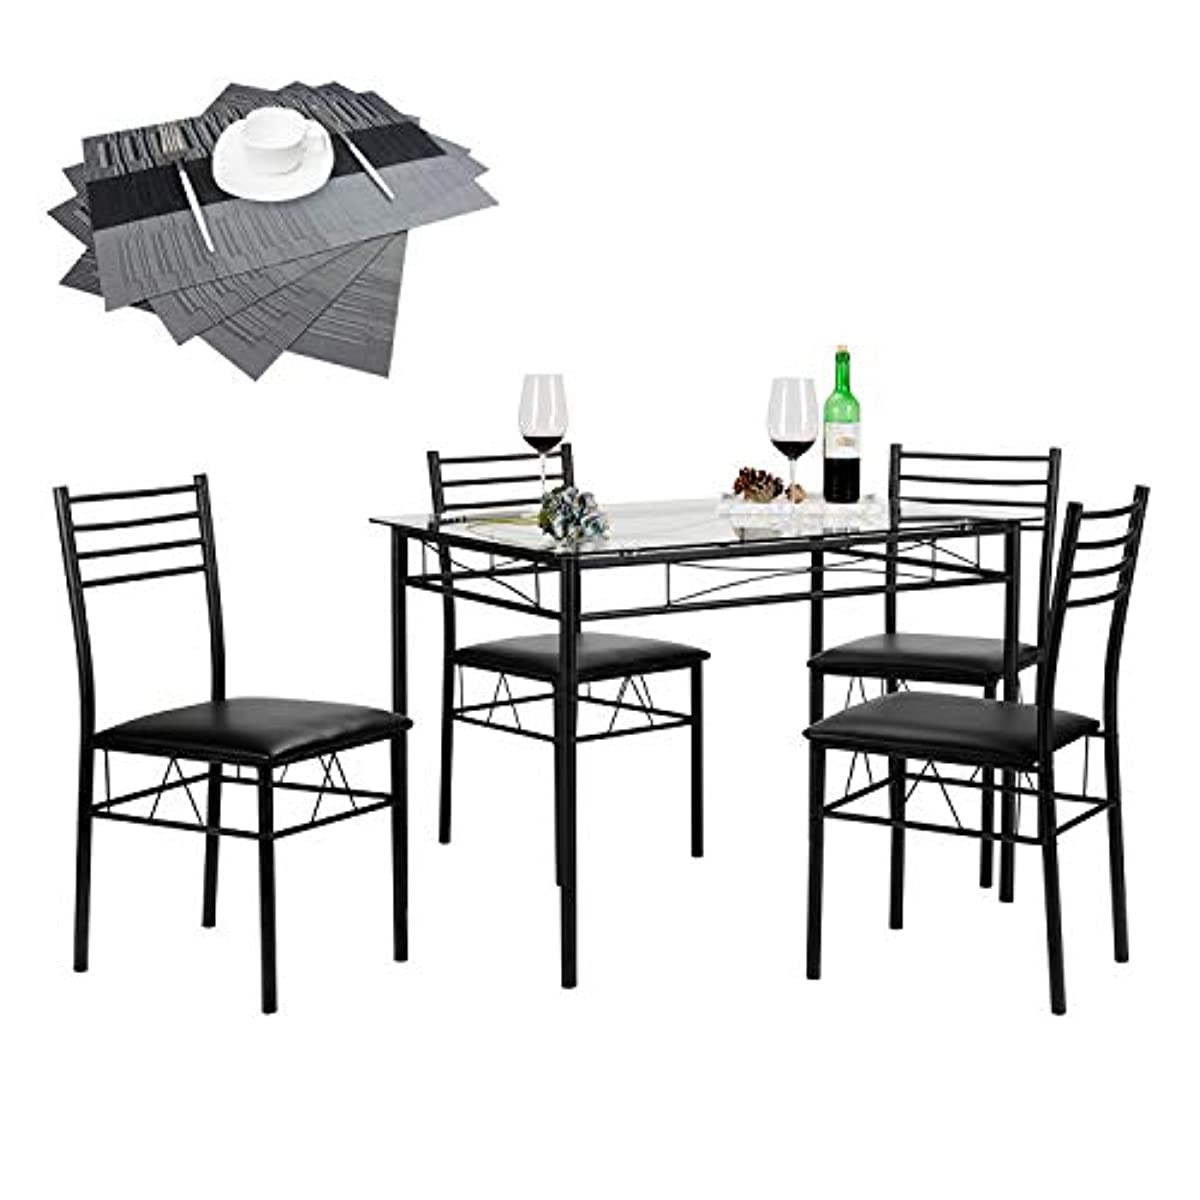 Astounding Details About 5 Piece Dining Table Set Tempered Glass Top Chairs 4 Placemats Sturdy Black Lamtechconsult Wood Chair Design Ideas Lamtechconsultcom